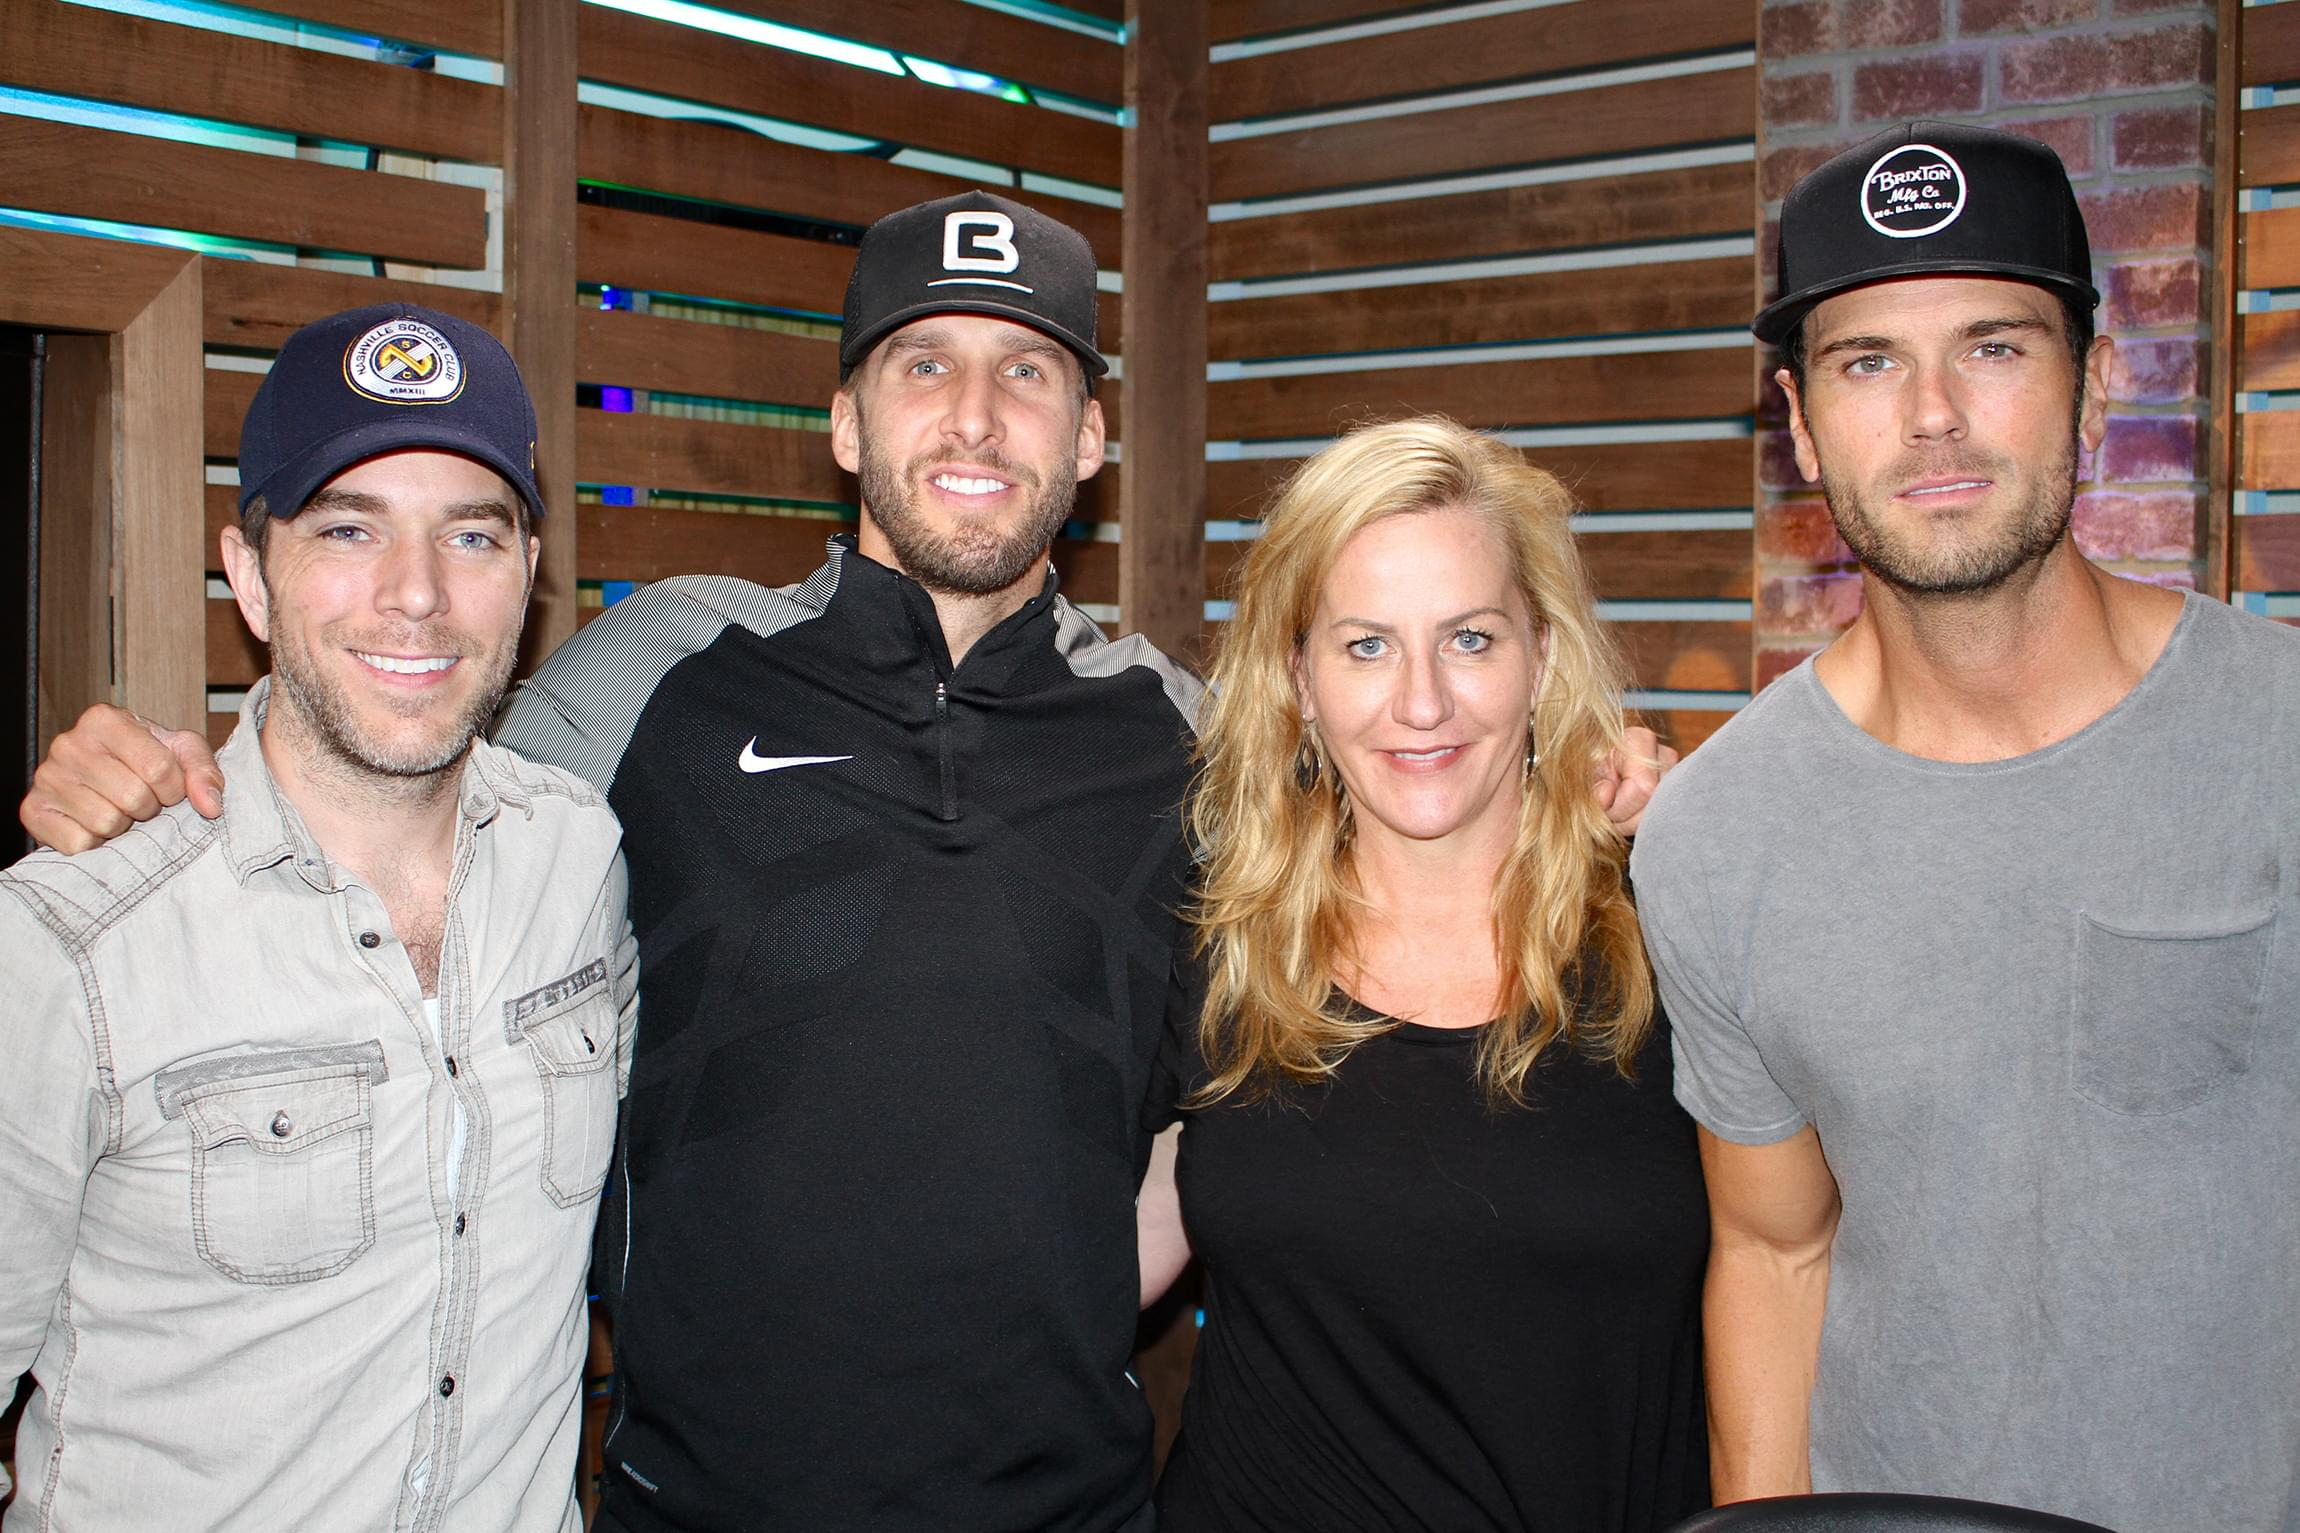 Shawn Booth from The Bachelorette Stopped In to Talk About His New BOOTHCAMP App, BOOTHCAMP Gym, & MORE